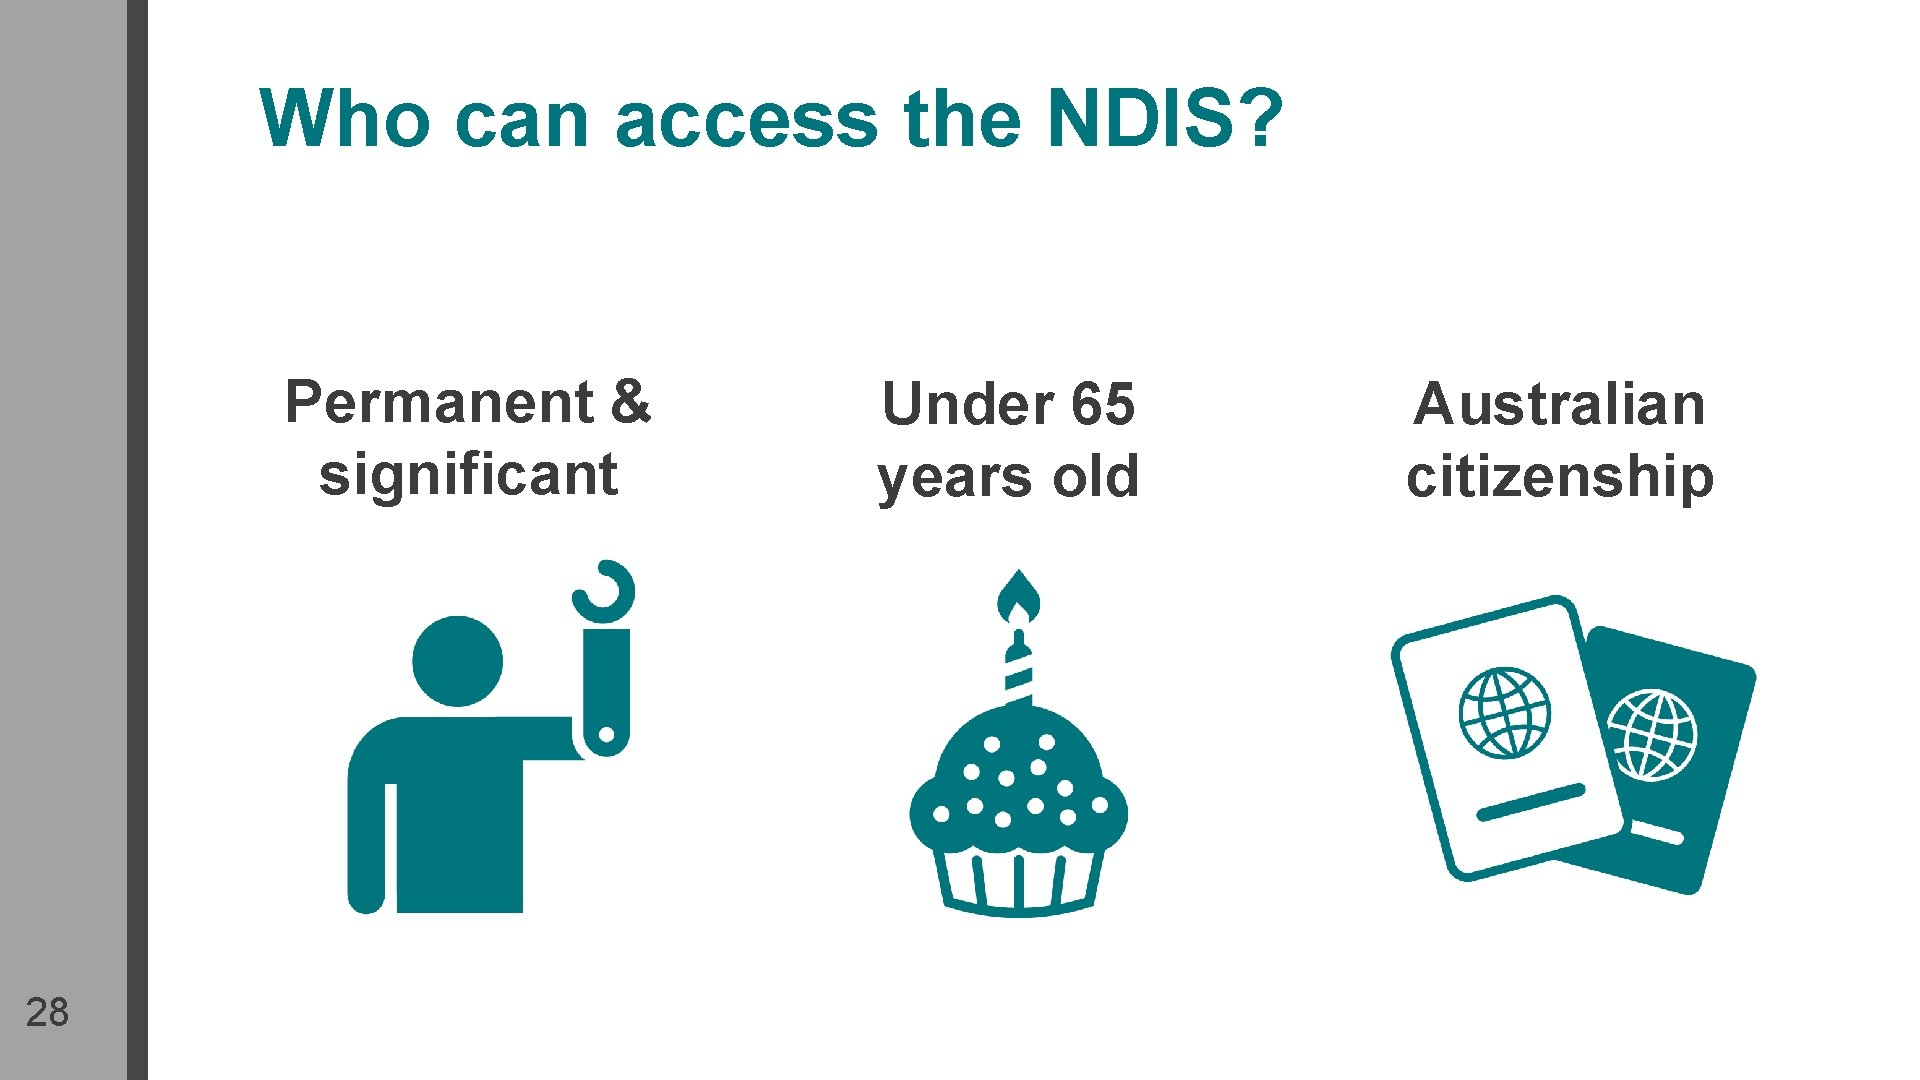 Who can access the NDIS? Permanent & significant 28 Under 65 years old Australian